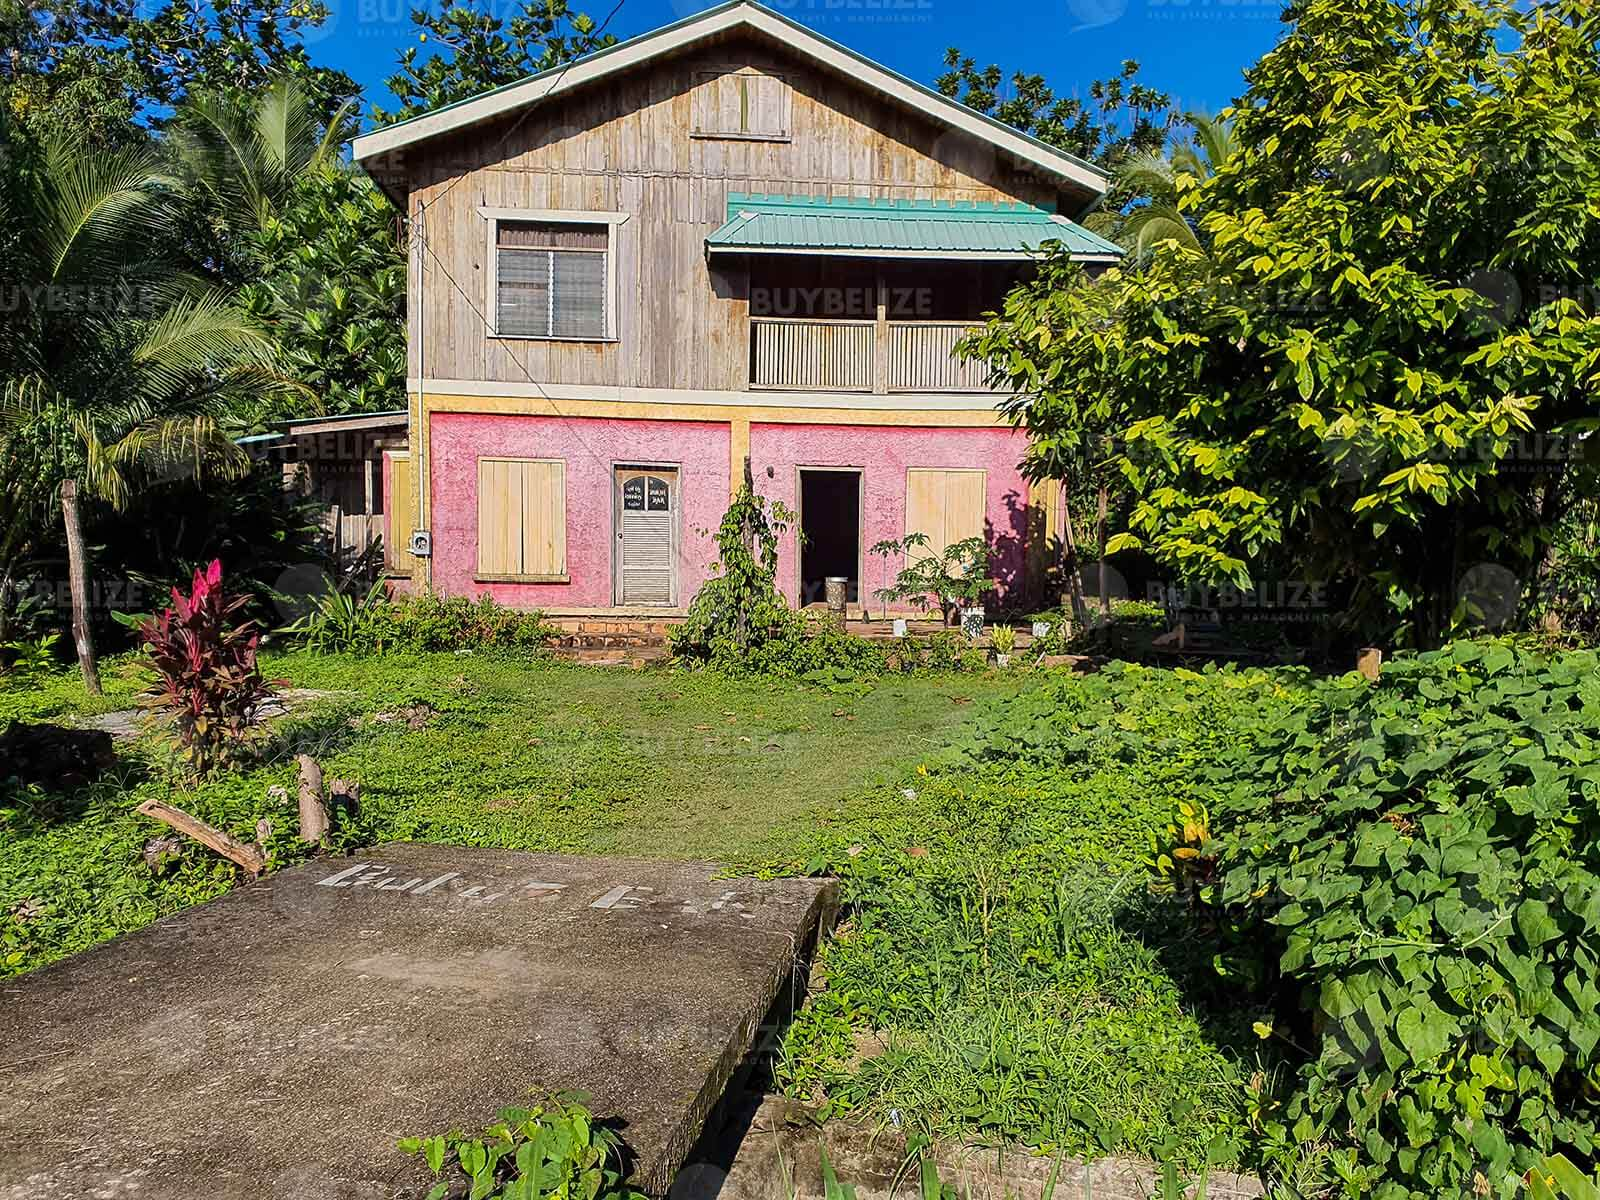 Two Story House for Sale in Punta Gorda Town, Toledo, Belize